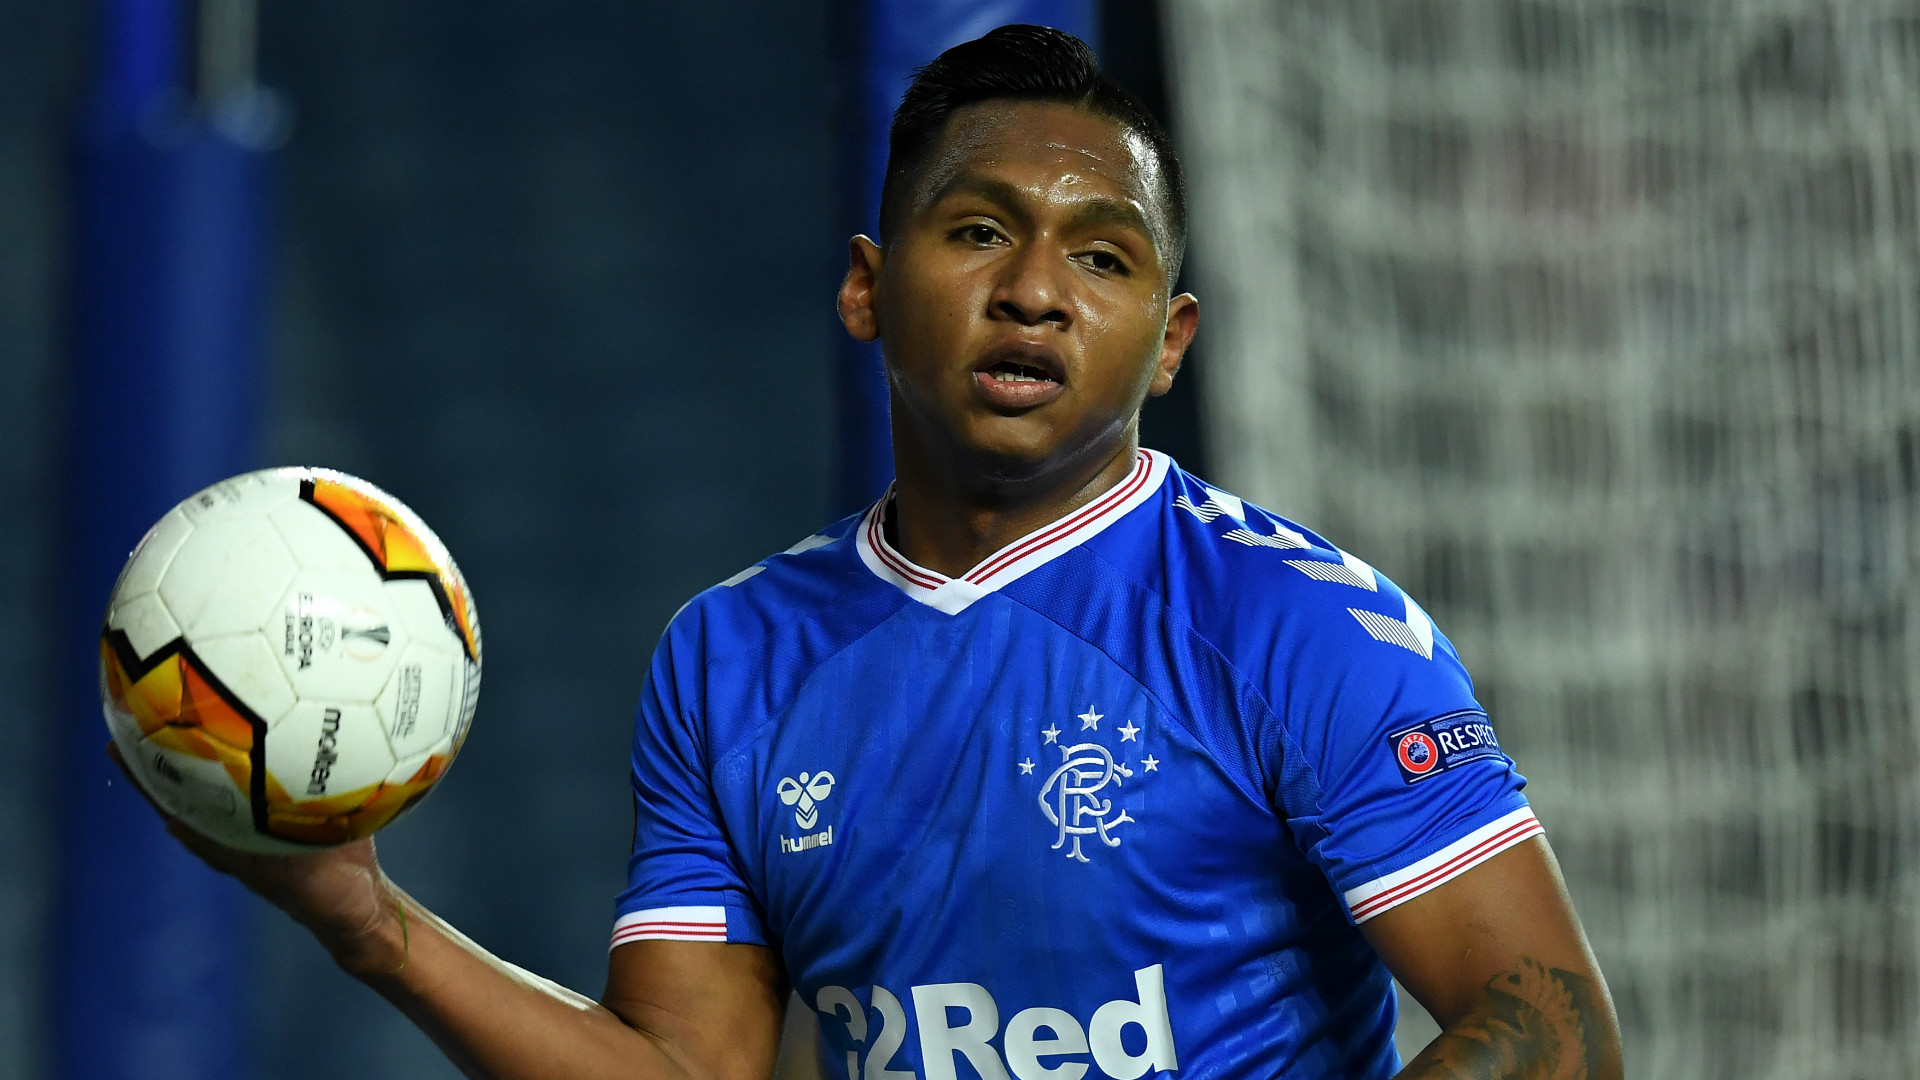 'I've picked the players that looked focused' - Rangers boss Gerrard drops Morelos amid transfer talk